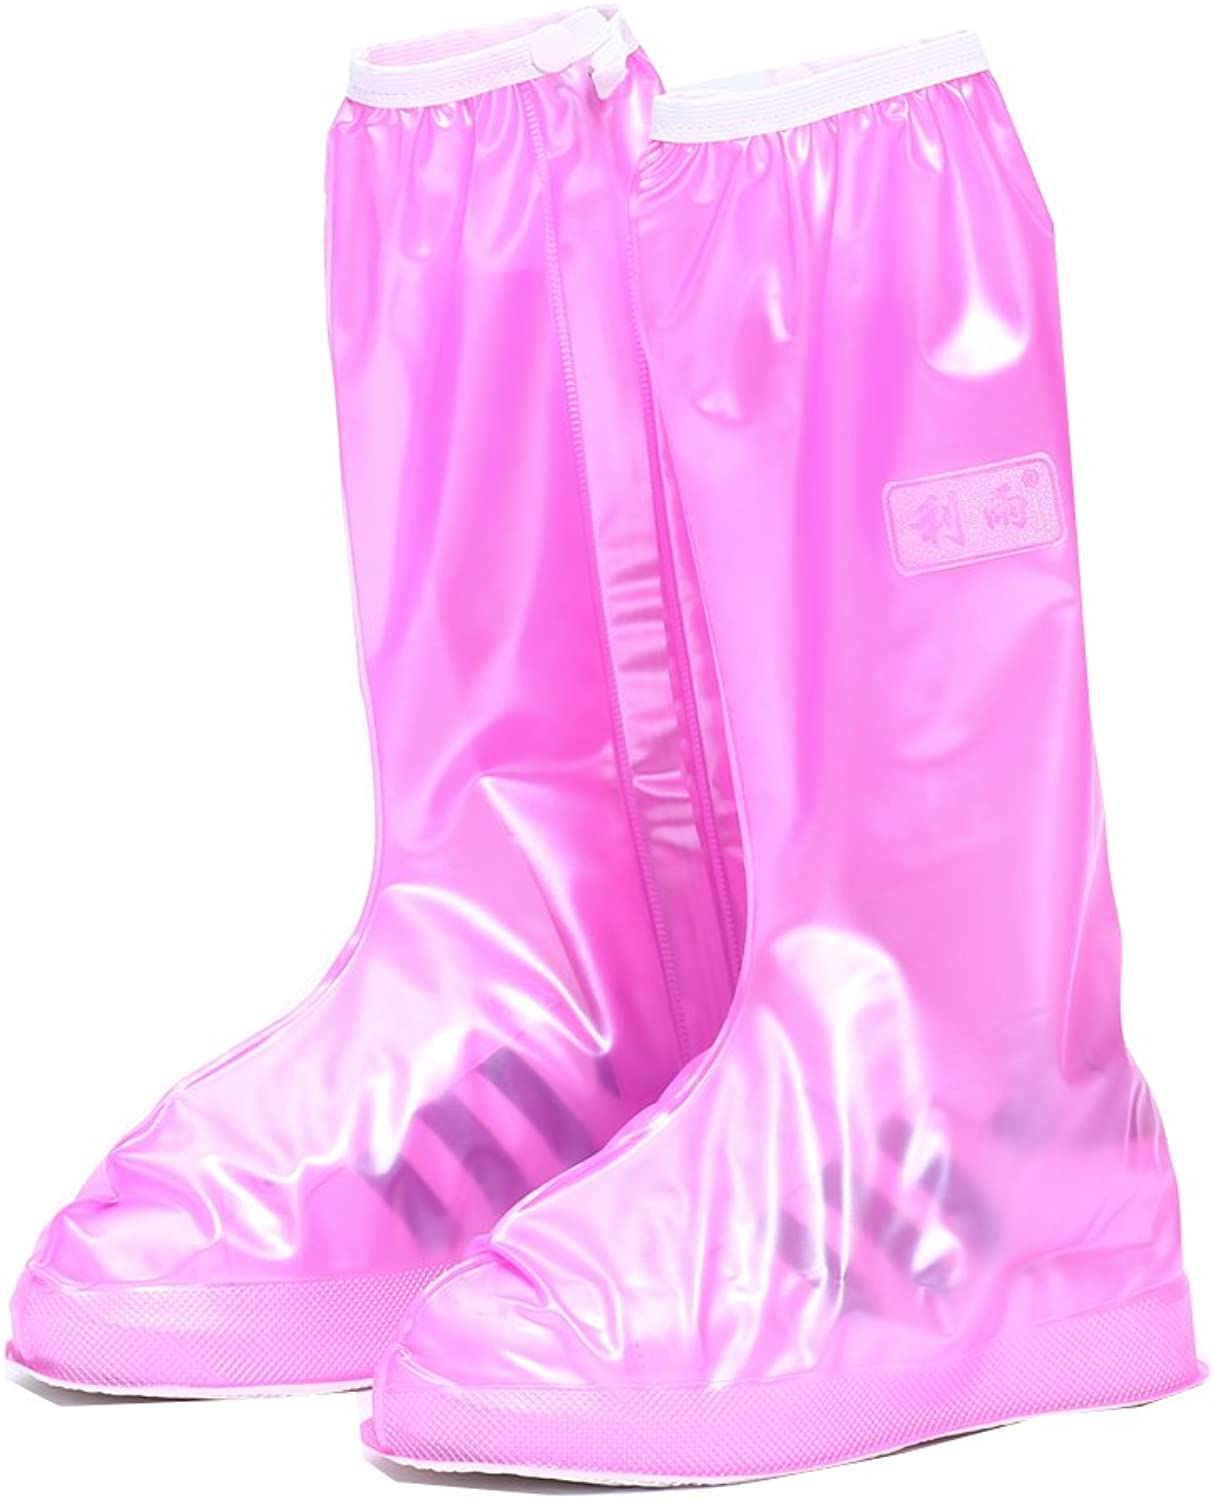 E-supao Women and Men Waterproof shoes Cover Rain Snow Boots Covers Reusable Slip-Resistant Rain Covers